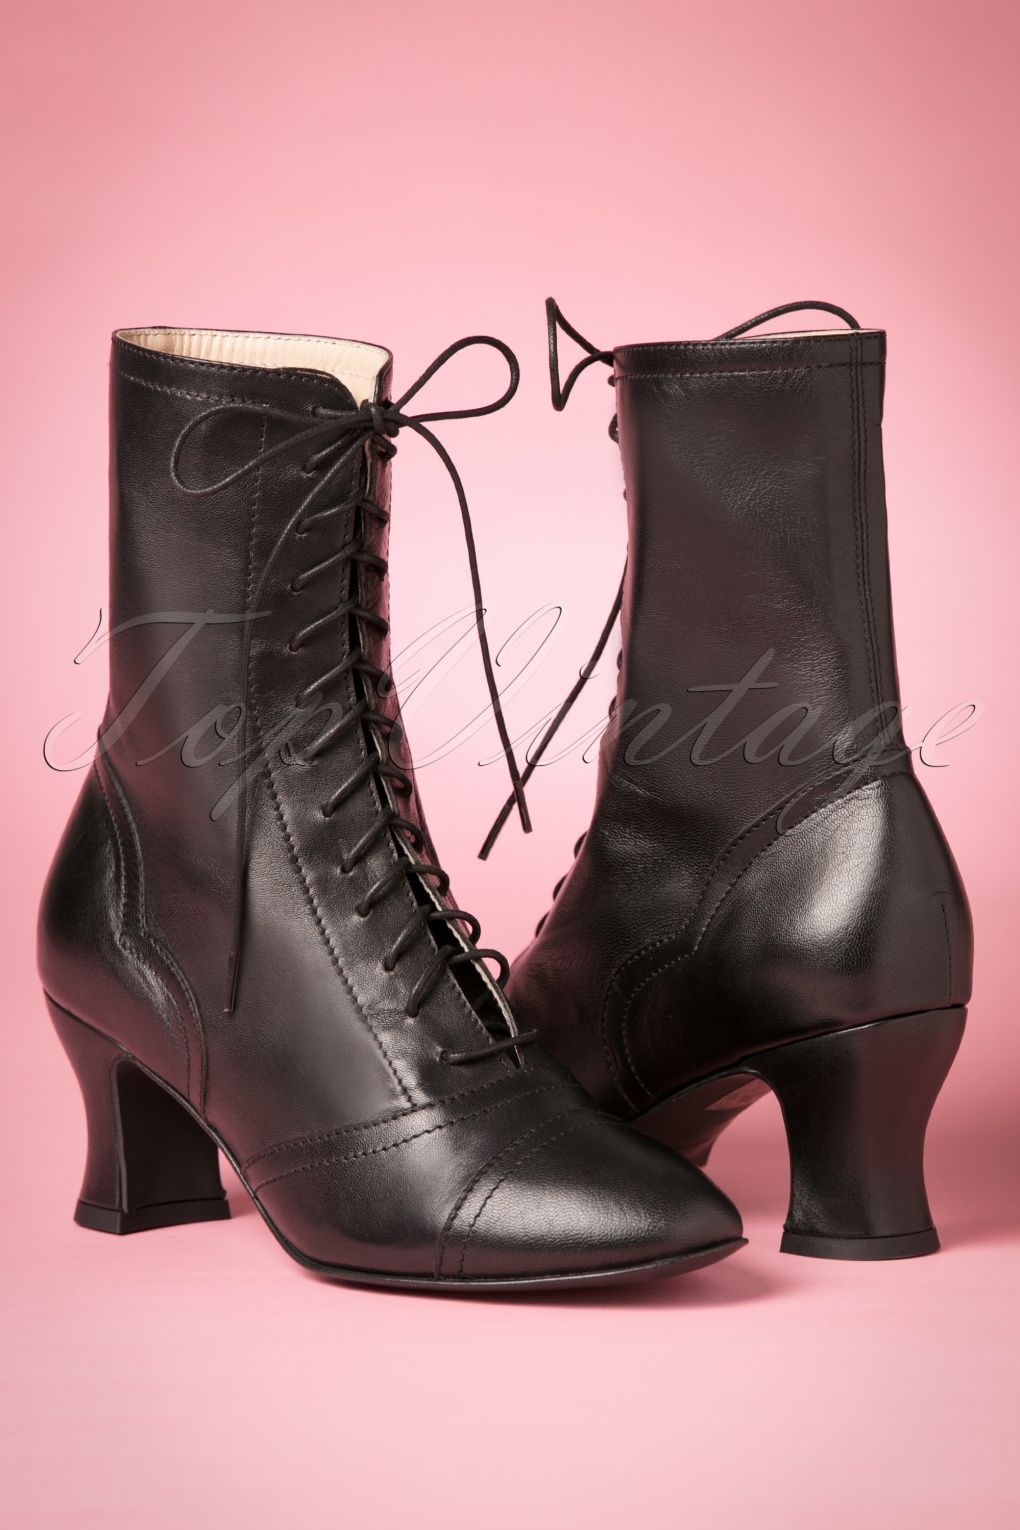 1950s Style Shoes 40s Frida Lace Up Booties in Black £180.42 AT vintagedancer.com